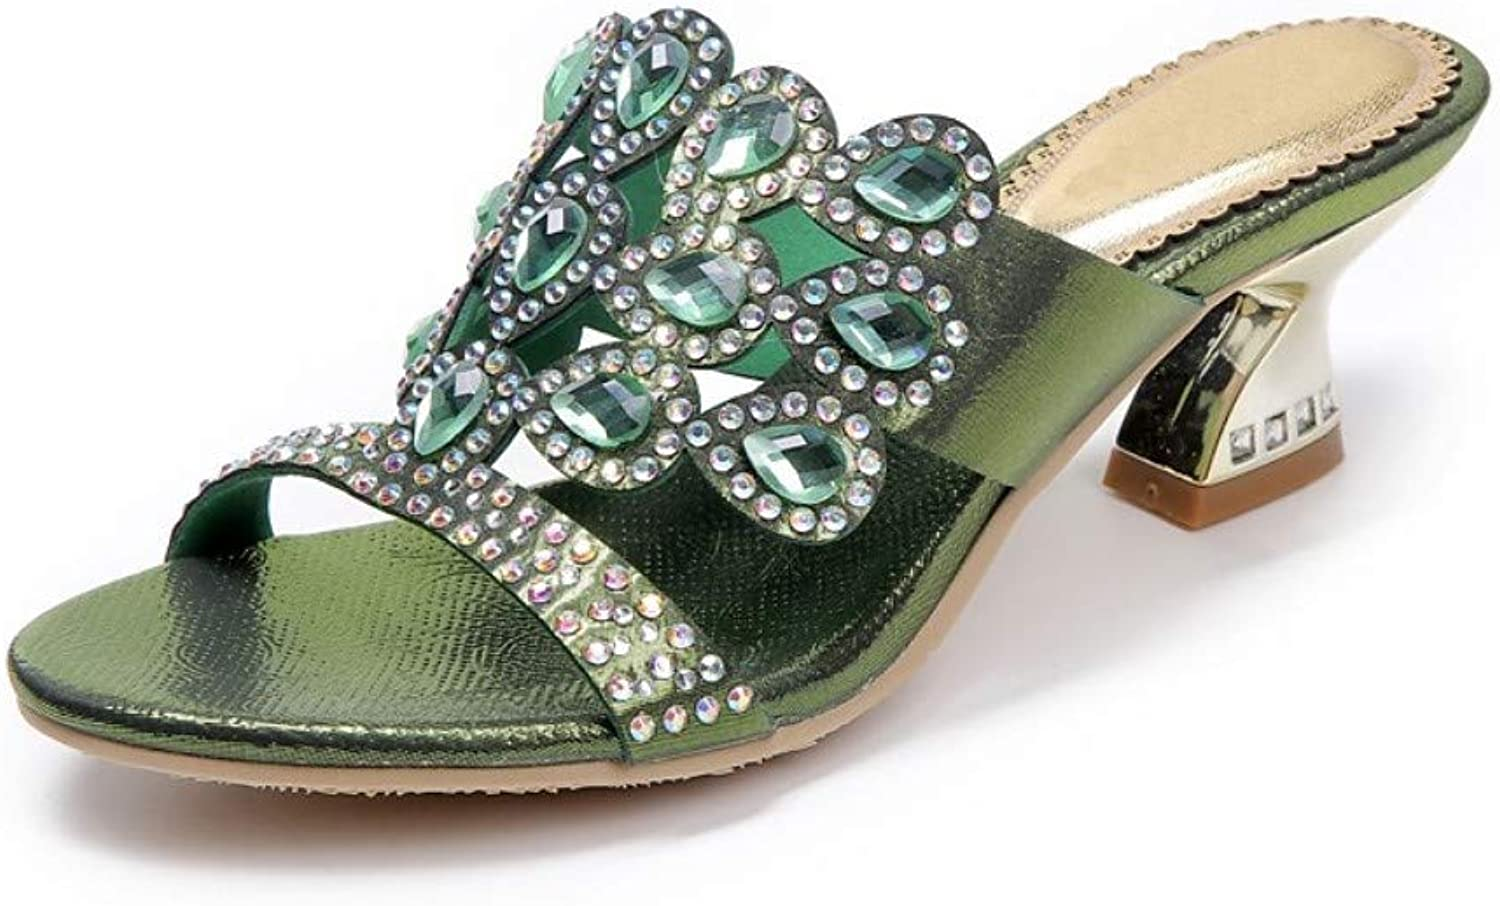 IWlxz Women's Polyurethane Spring Summer Fashion Boots Sandals Chunky Heel Open Toe Rhinestone Crystal Sparkling Glitter gold Dark bluee Green Buckle Party & Evening